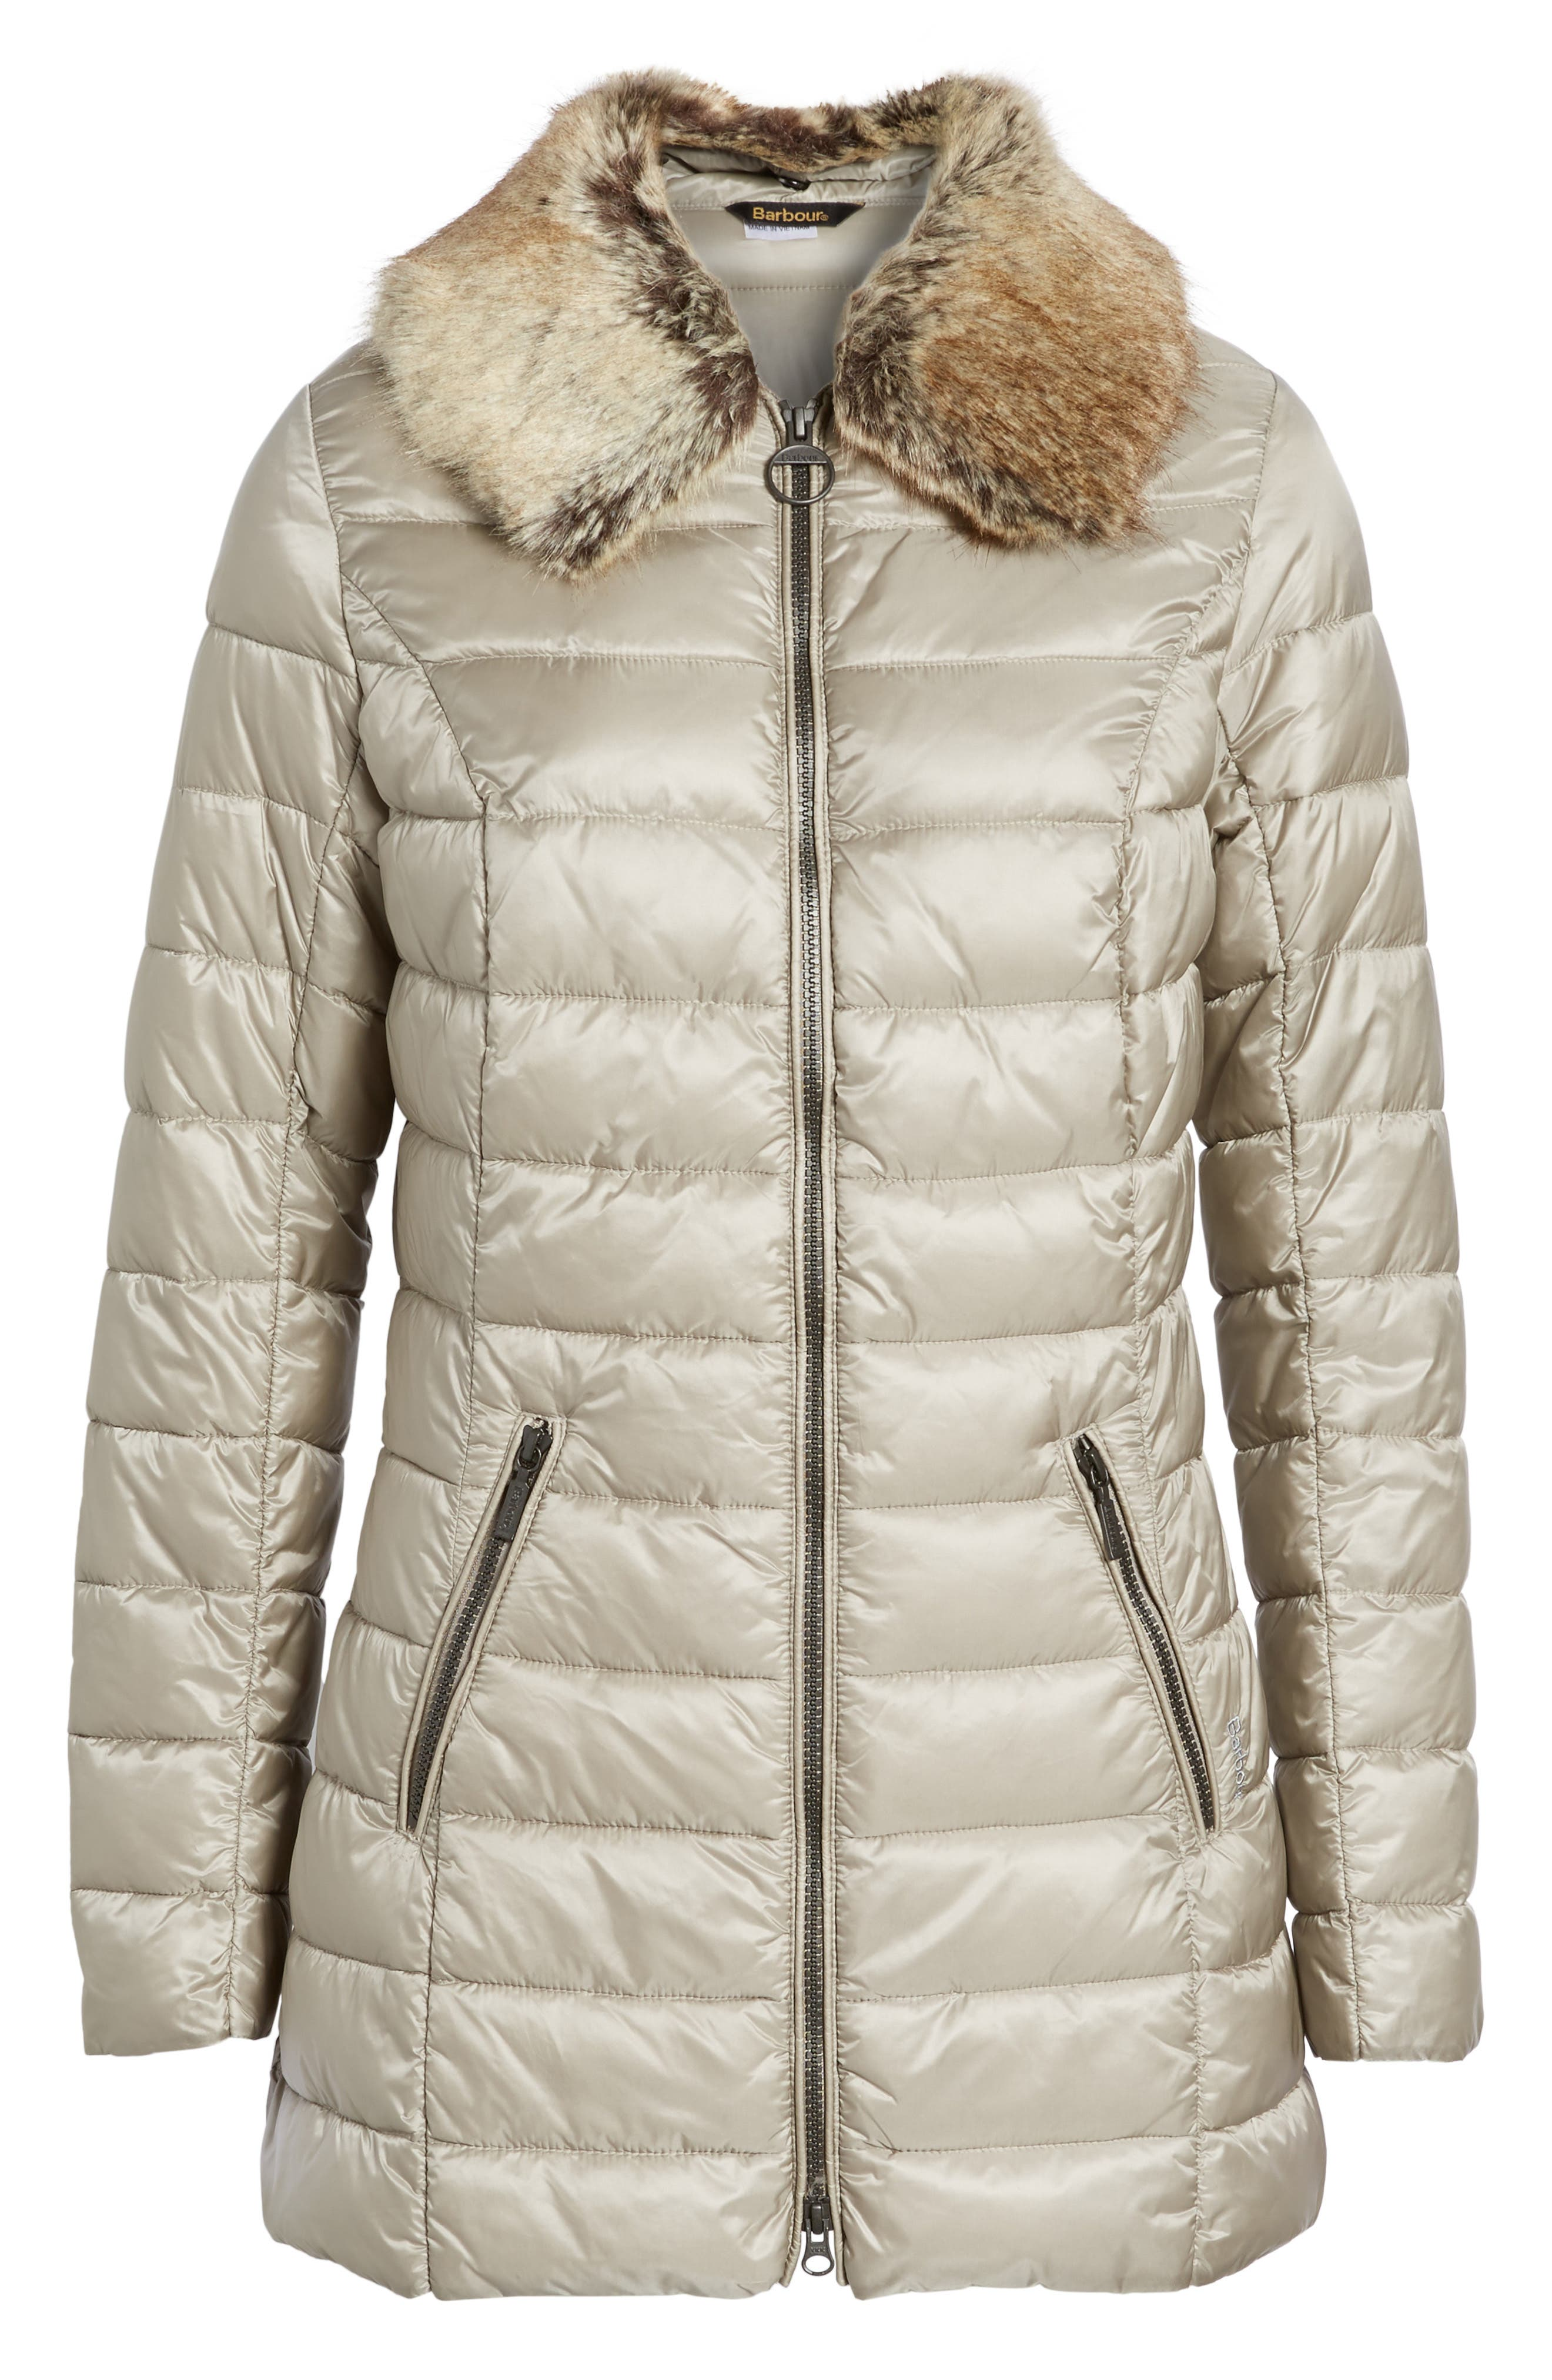 Rambleton Water Resistant Quilted Jacket with Faux Fur Collar,                             Alternate thumbnail 6, color,                             Taupe